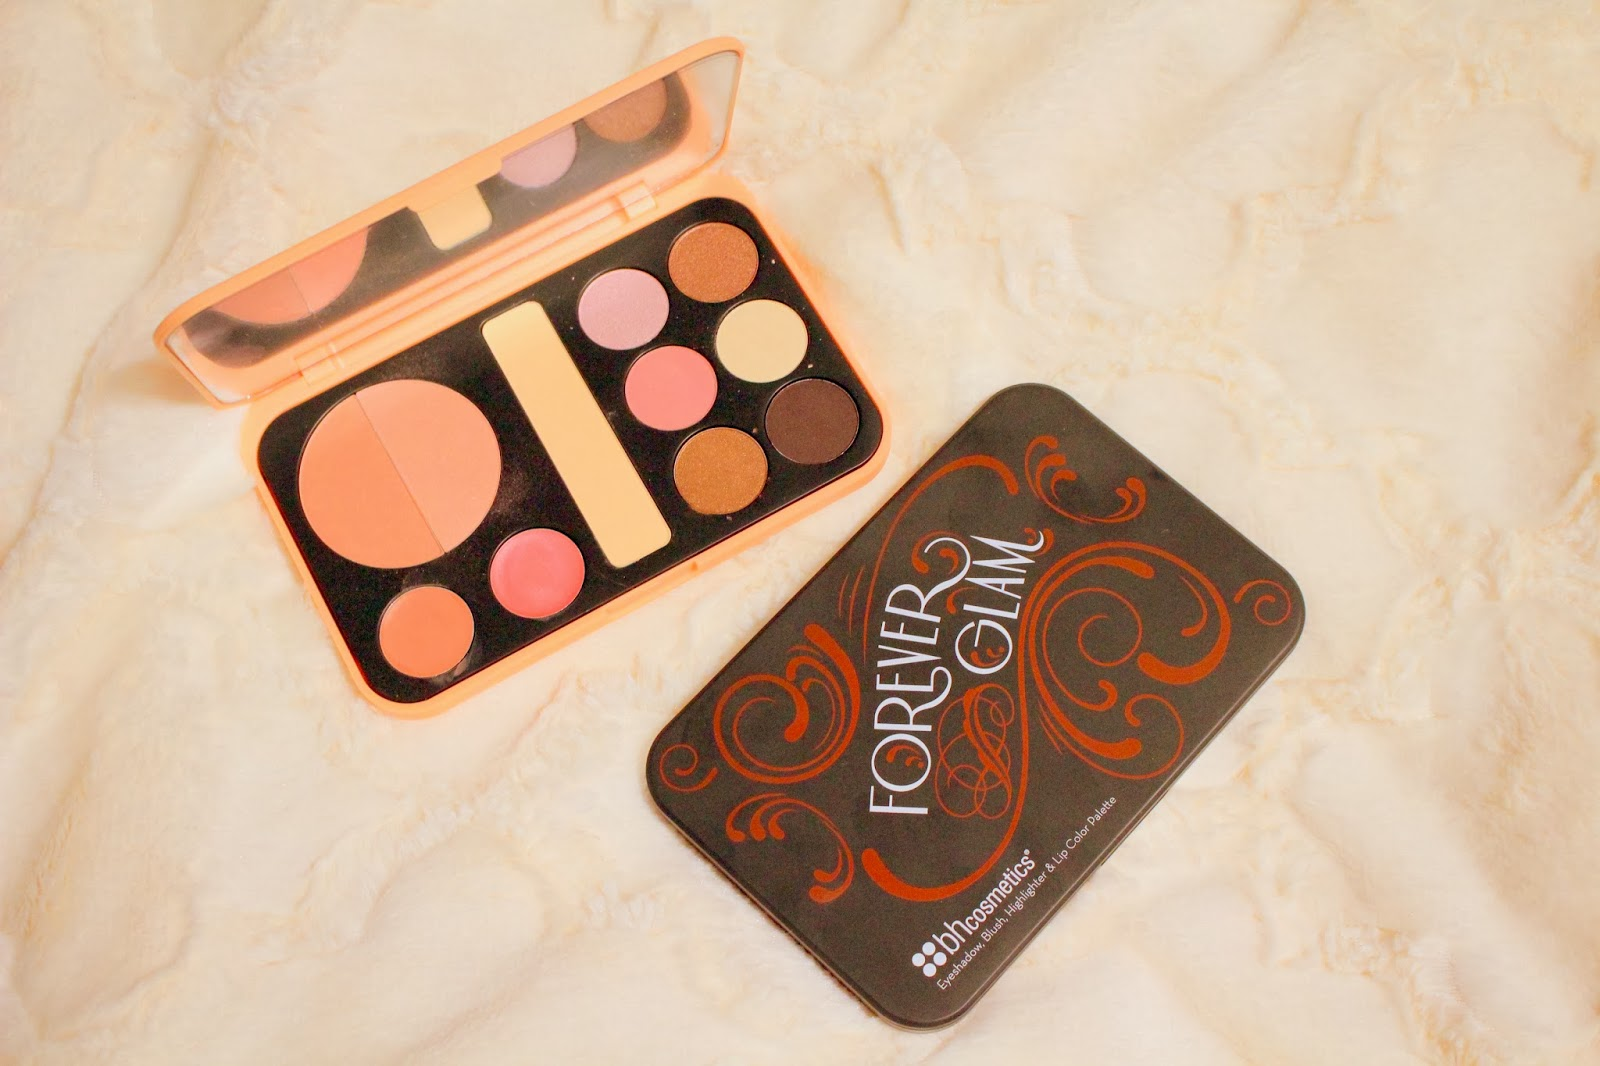 BH Cosmetics, BH Cosmetics Forever Nude Palette, BH Cosmetics Forever Glam Palette